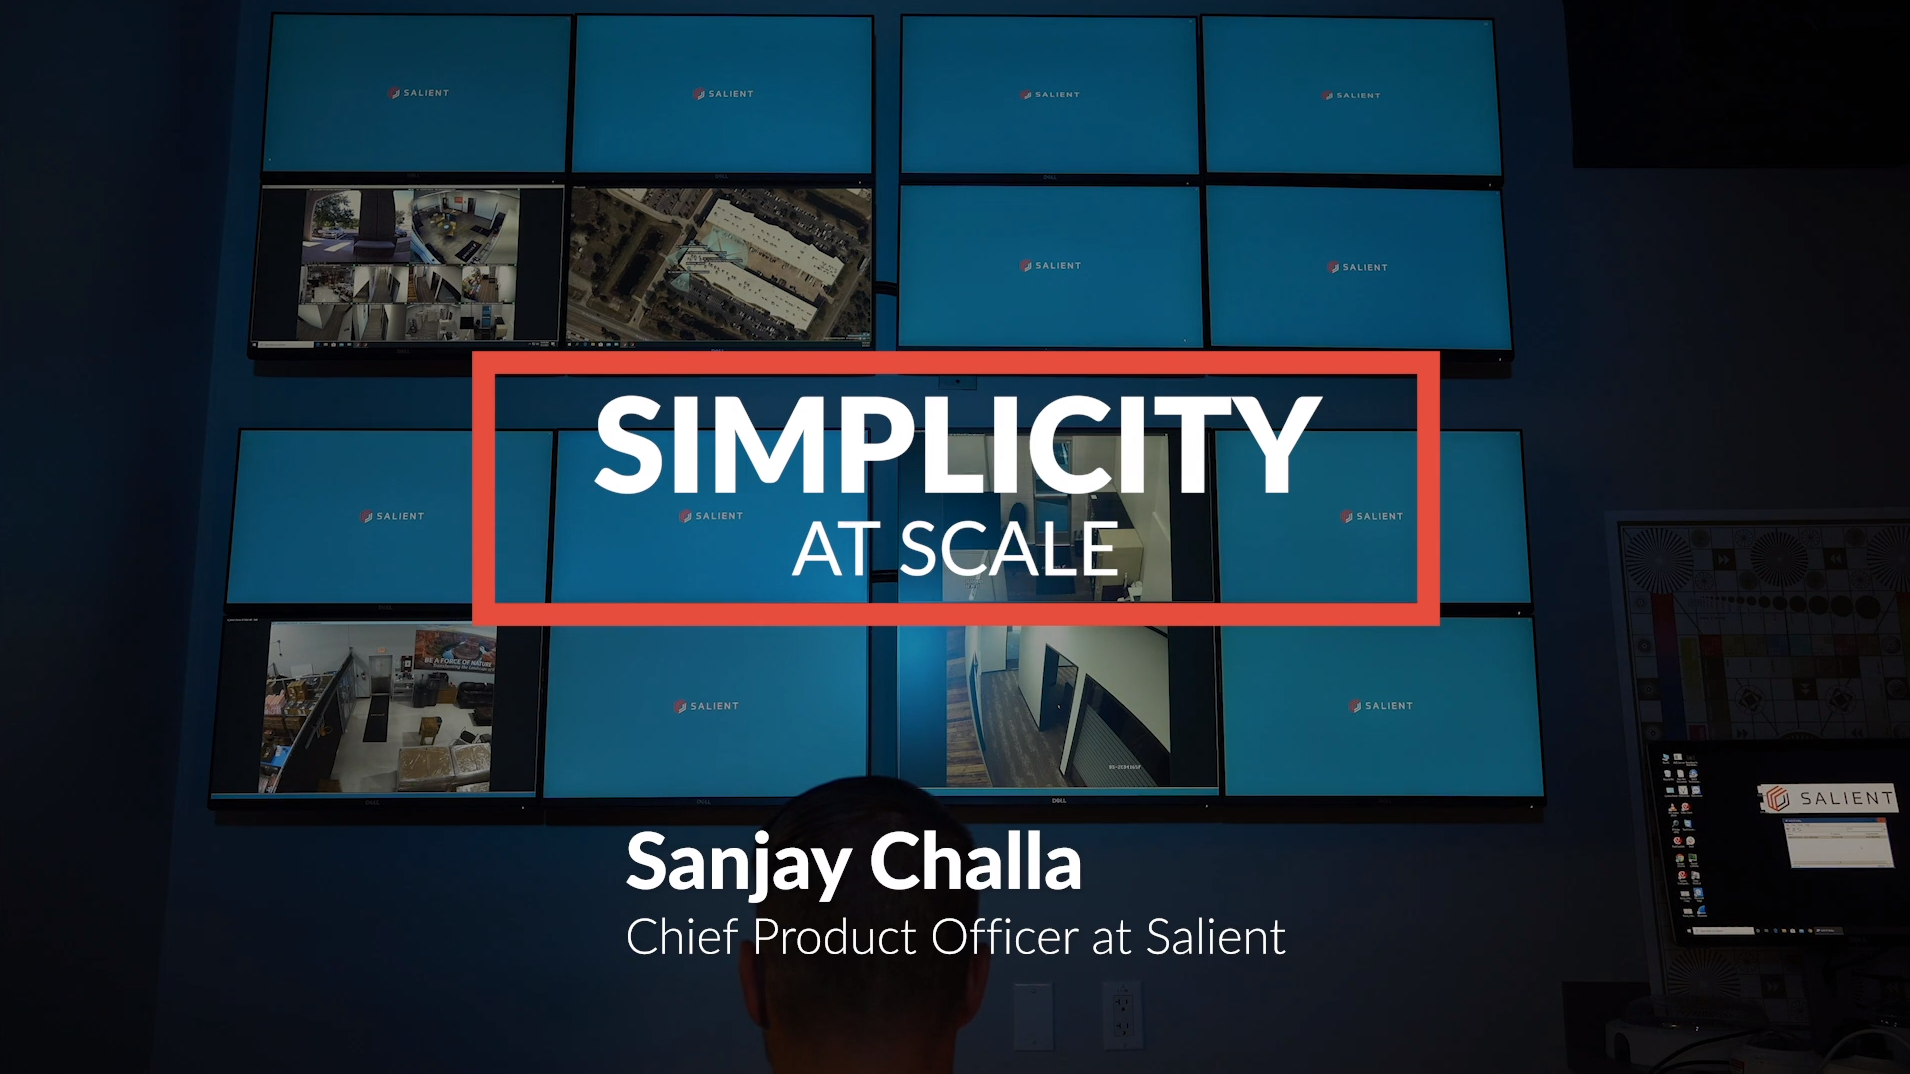 poster image for Simplicity at Scale video